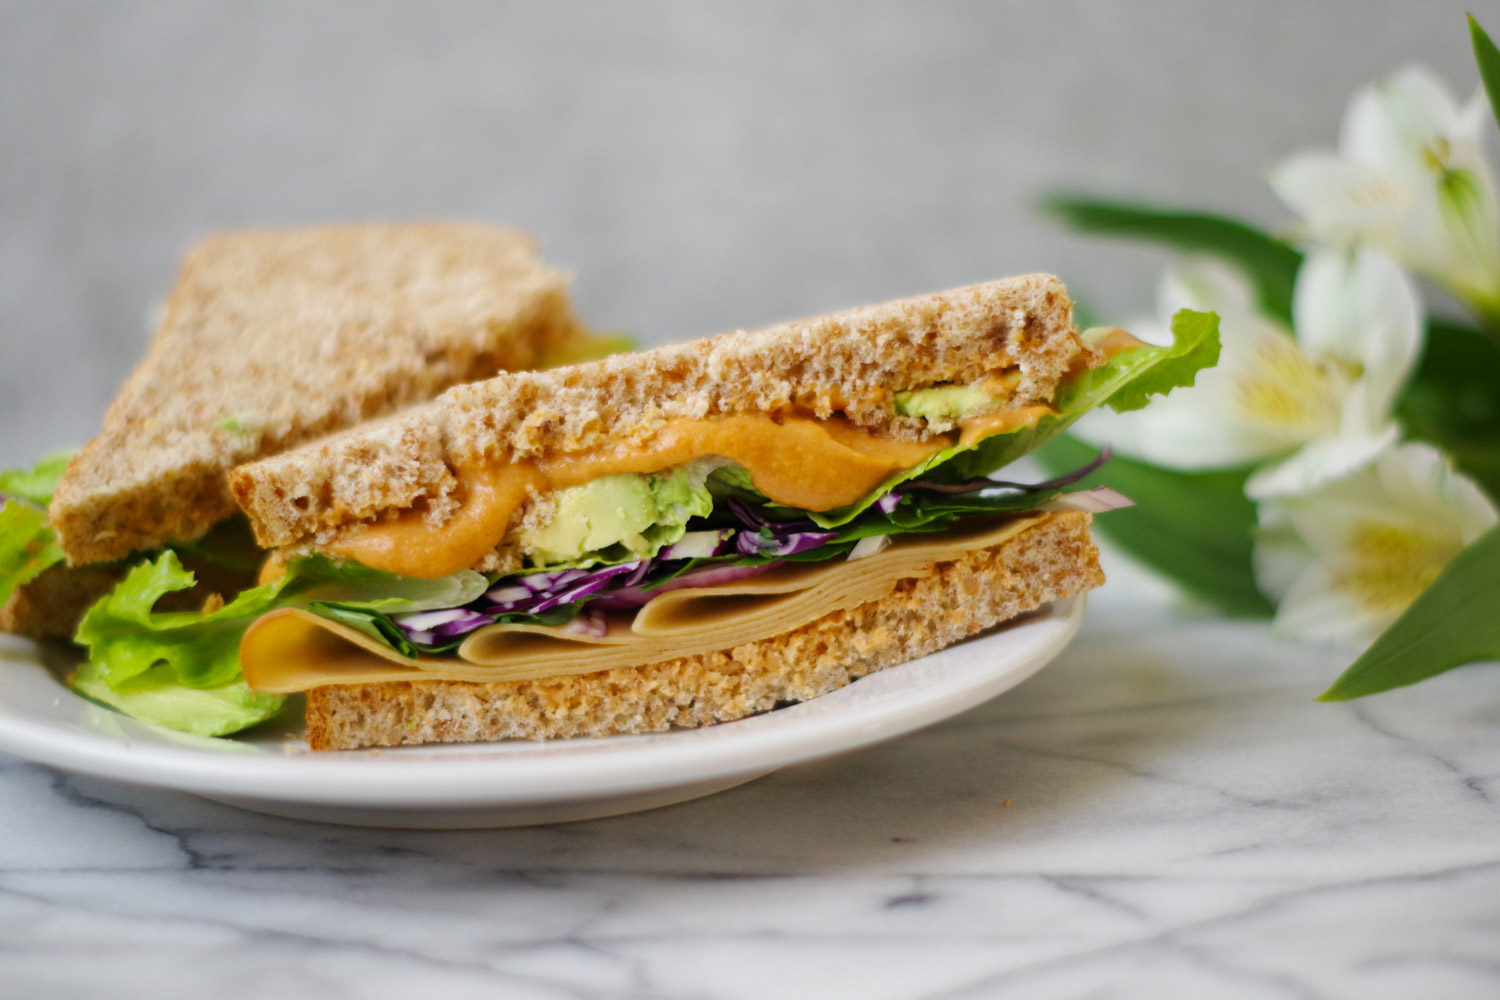 Vegan Chipotle Mayo with Cauliflower Base makes a delish sandwich spread, by Beautiful Ingredient